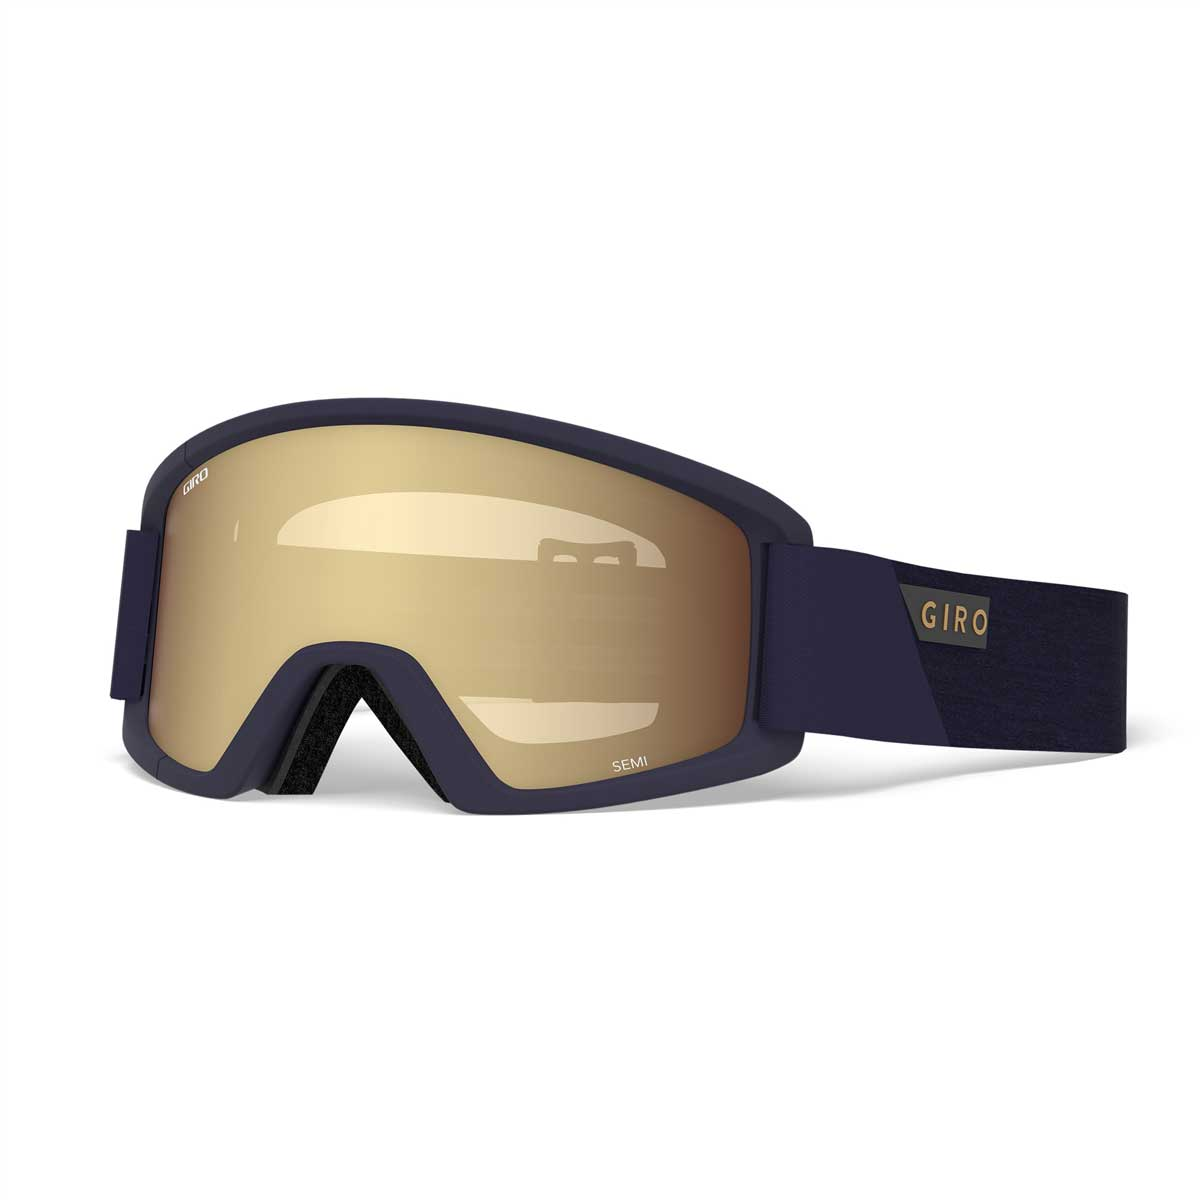 Giro Semi Goggle in Midnight Peak with Amber Gold